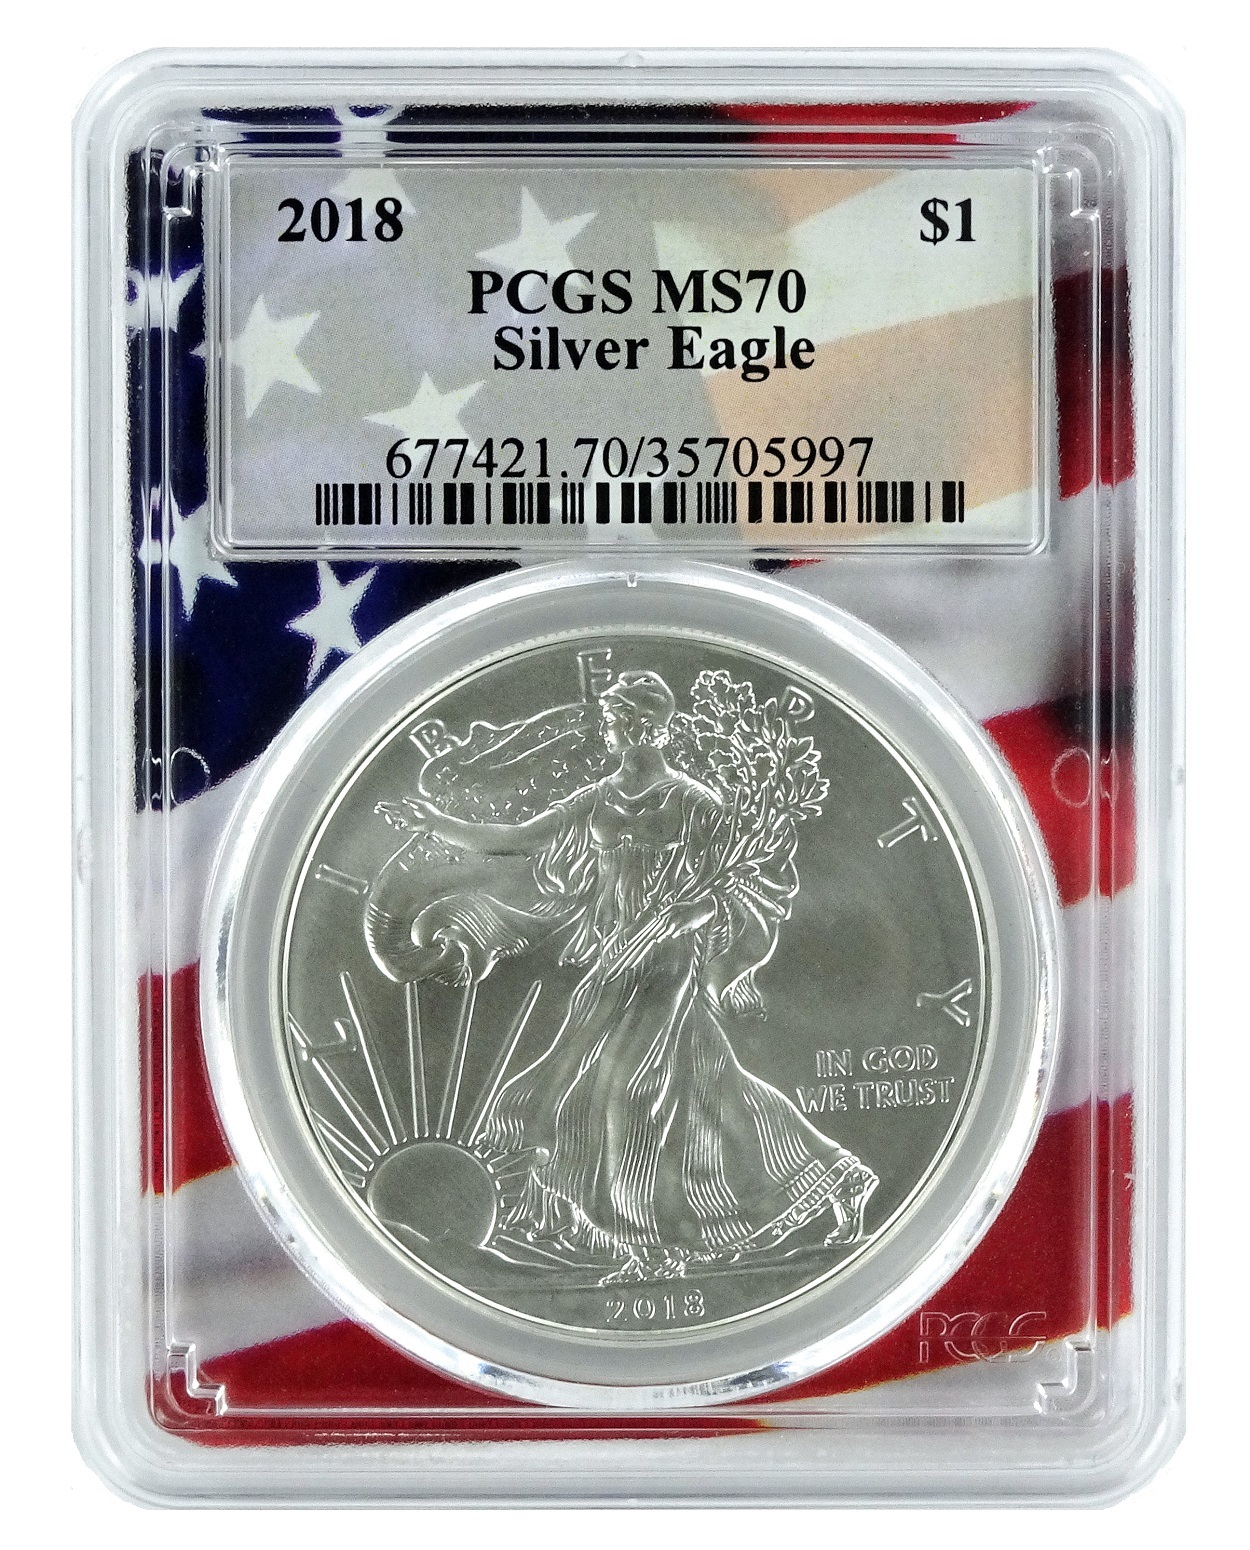 The 2018 American Silver Eagle Proof Coin Bee Available For Order Two Weeks Ago On January 4 First Day S According To Michael White Of Mint